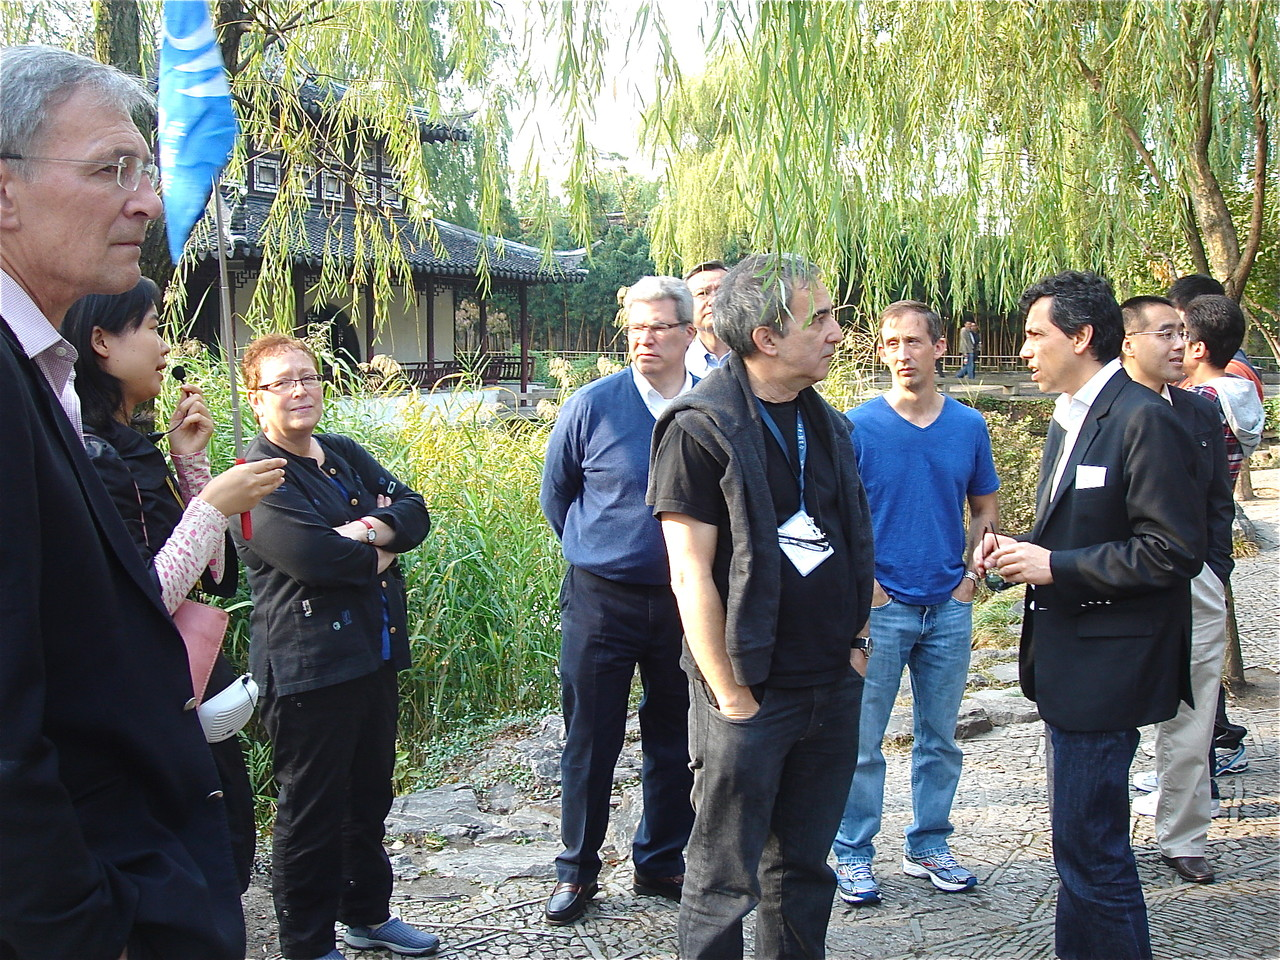 meeting attendees at the Humble Administrator's Garden, China